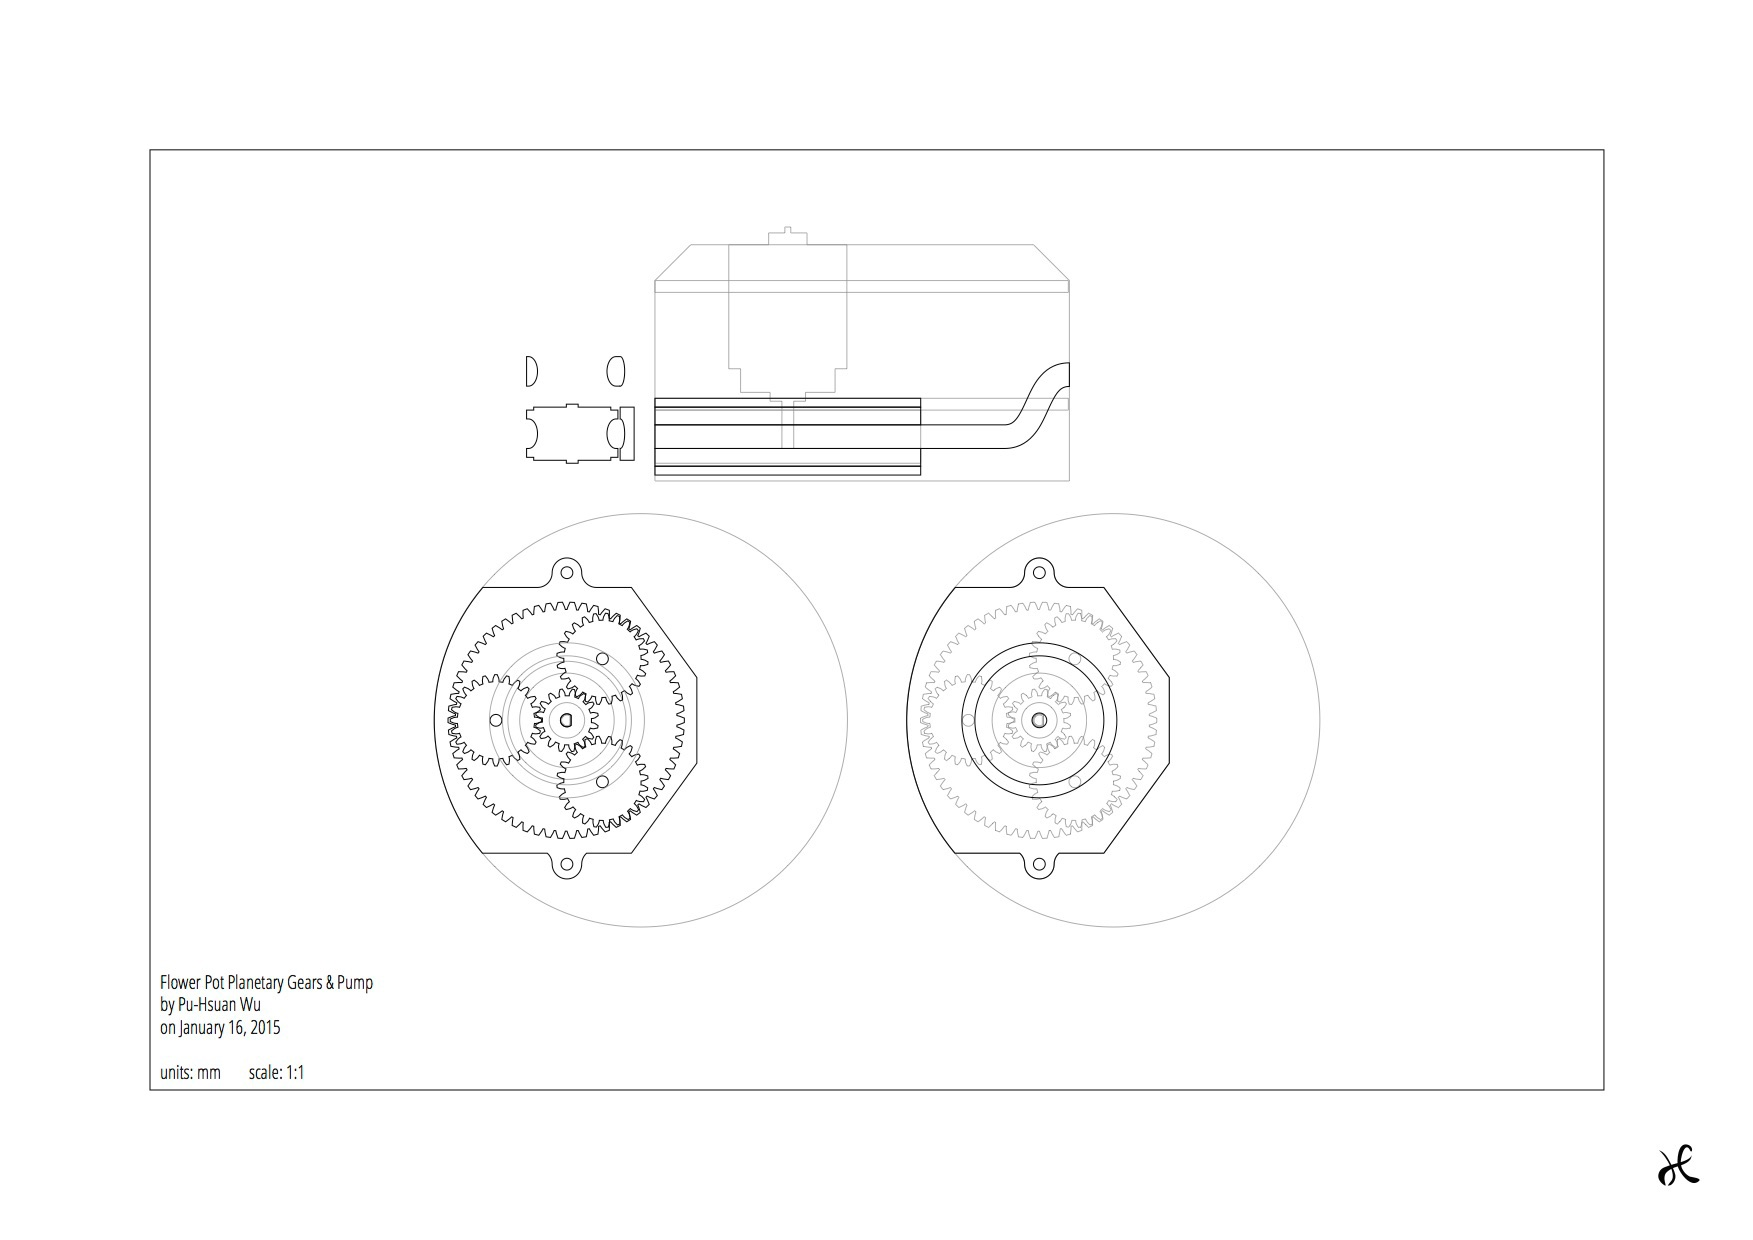 Pu hsuan wu smart flower pot figure 6 sketch of planetary gears driven water pump ccuart Image collections